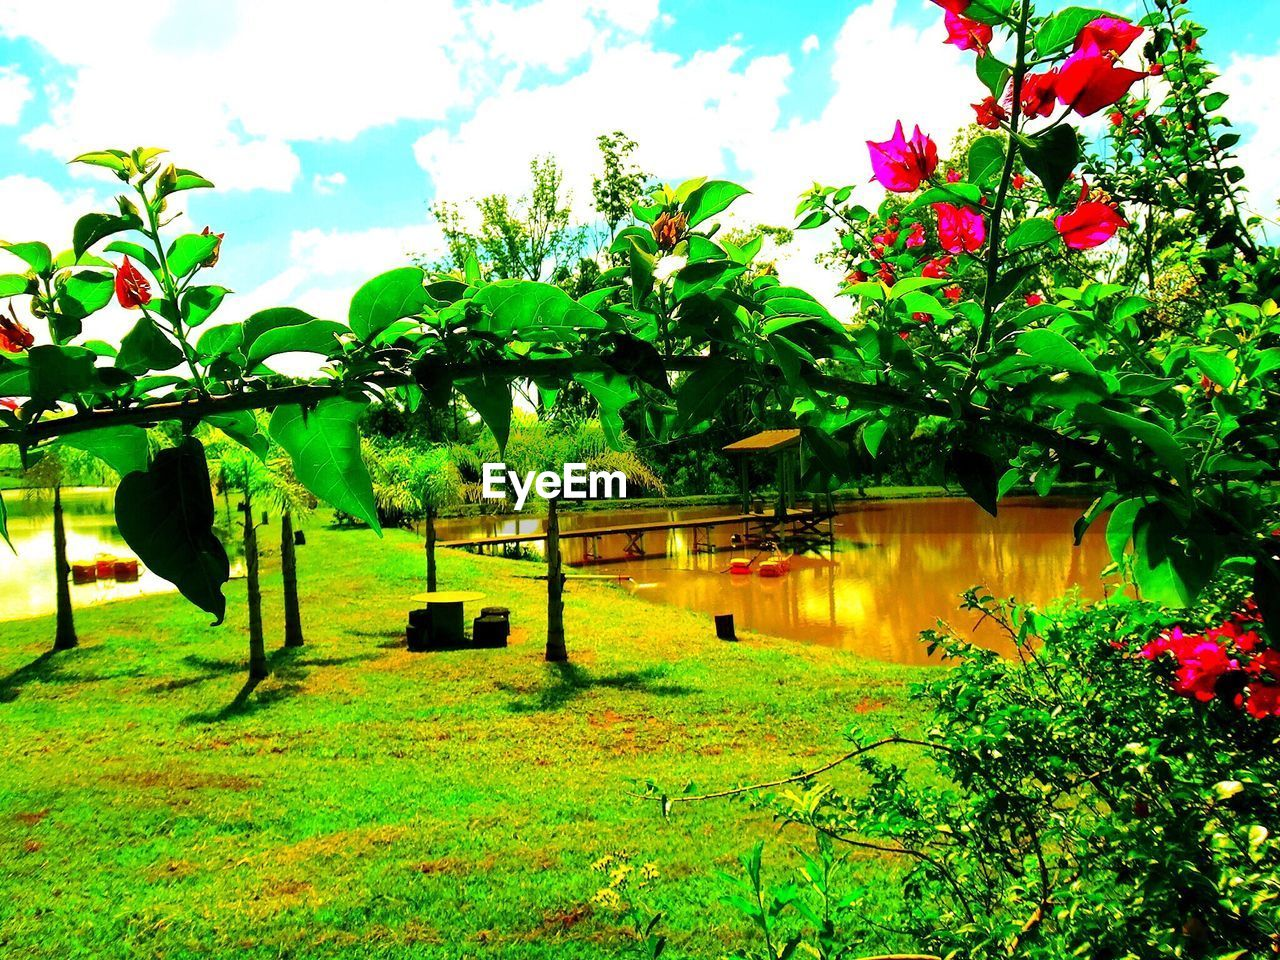 growth, tree, nature, beauty in nature, green color, flower, plant, outdoors, day, no people, grass, sky